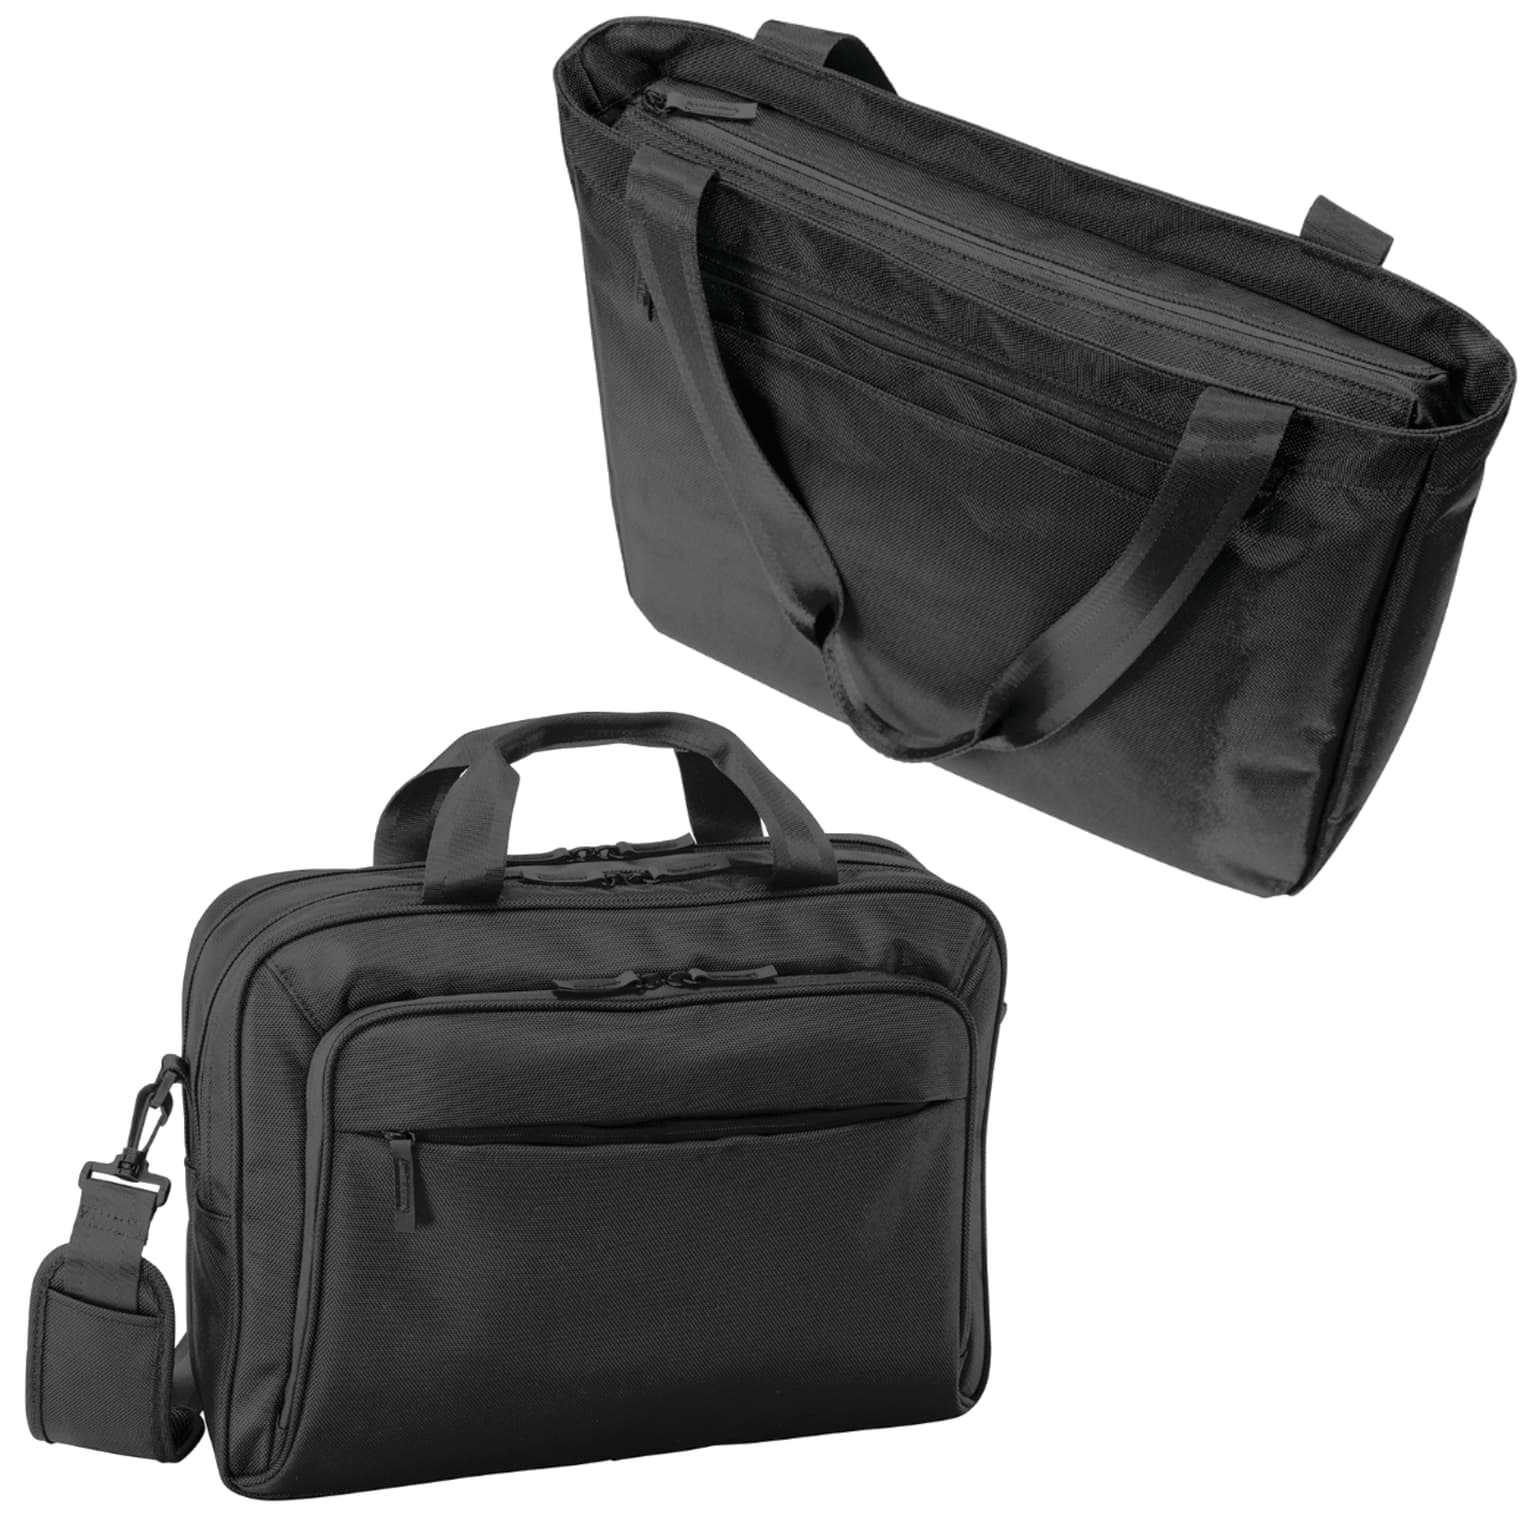 SanMar Business backpacks and Business cases